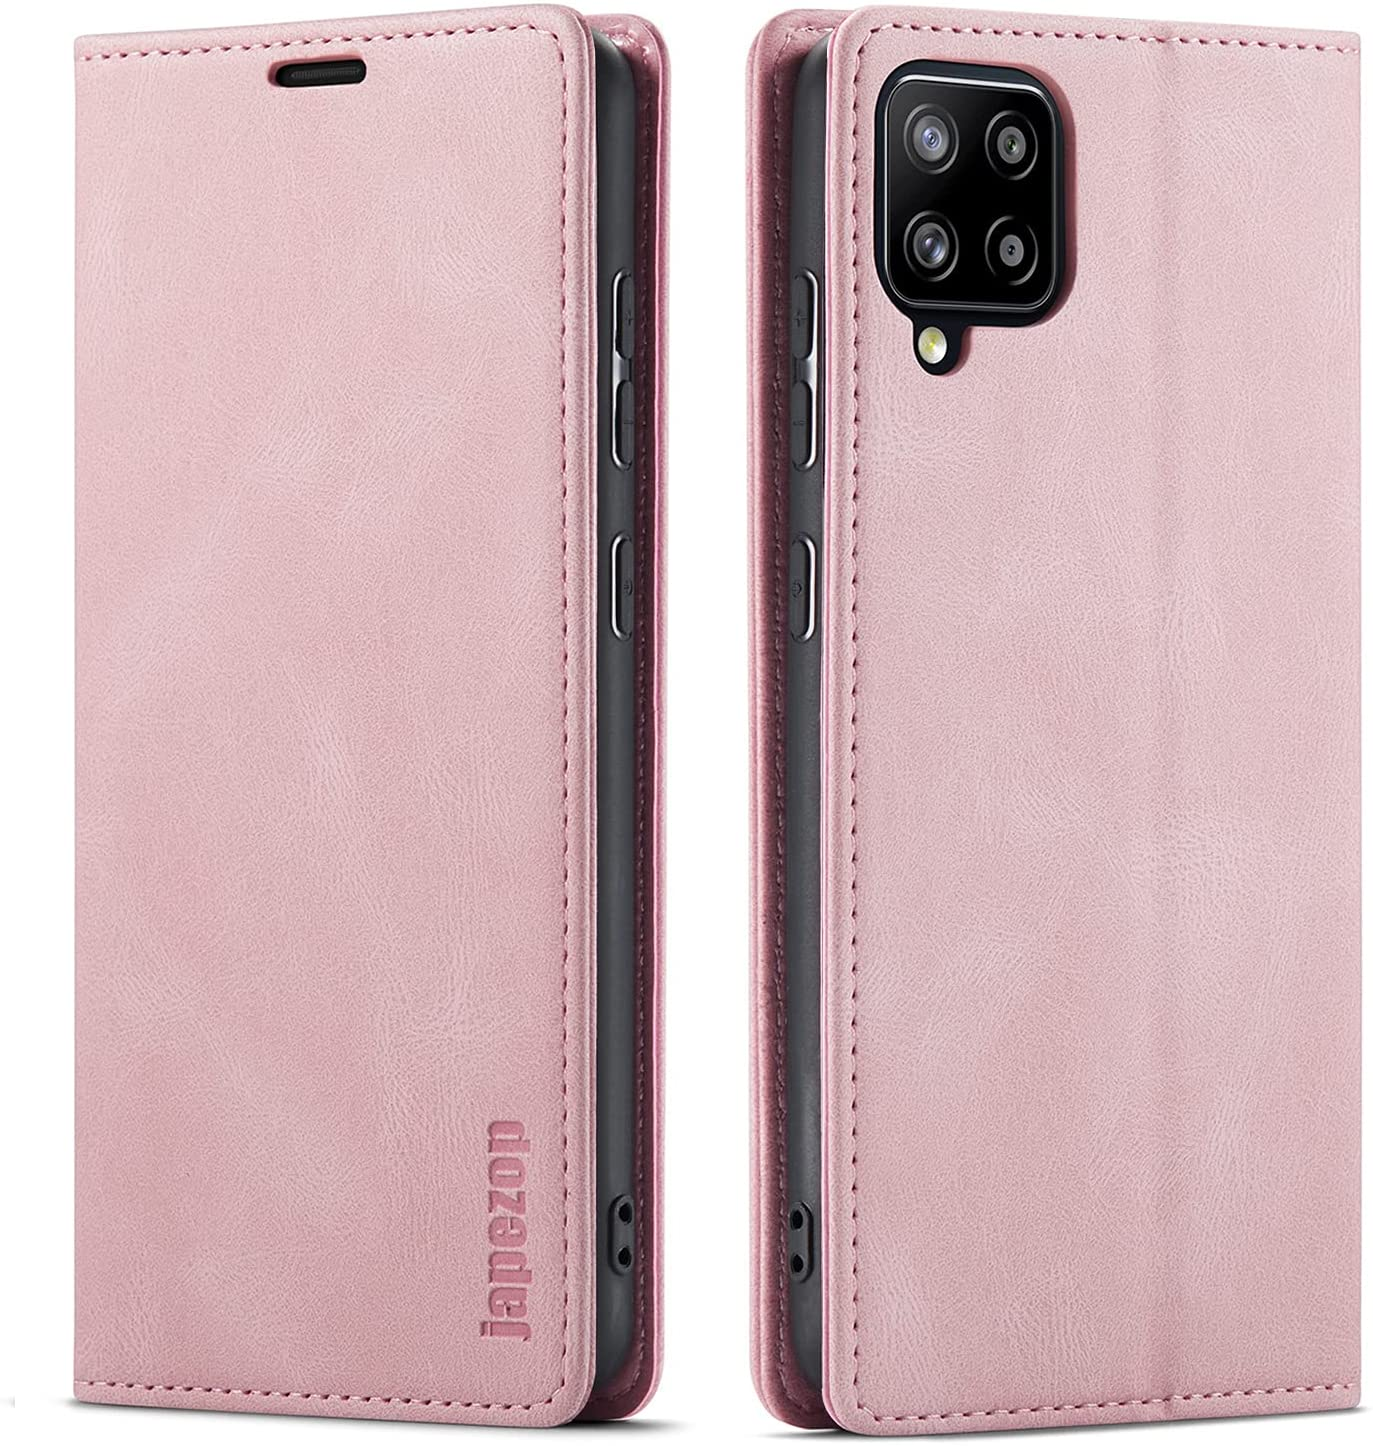 Samsung Galaxy A42 5G Case,Samsung Galaxy A42 5G Case Wallet with [RFID Blocking] Card Holder Kickstand Magnetic,Leather Flip Case for Samsung Galaxy A42 5G 6.6 inch (Pink)